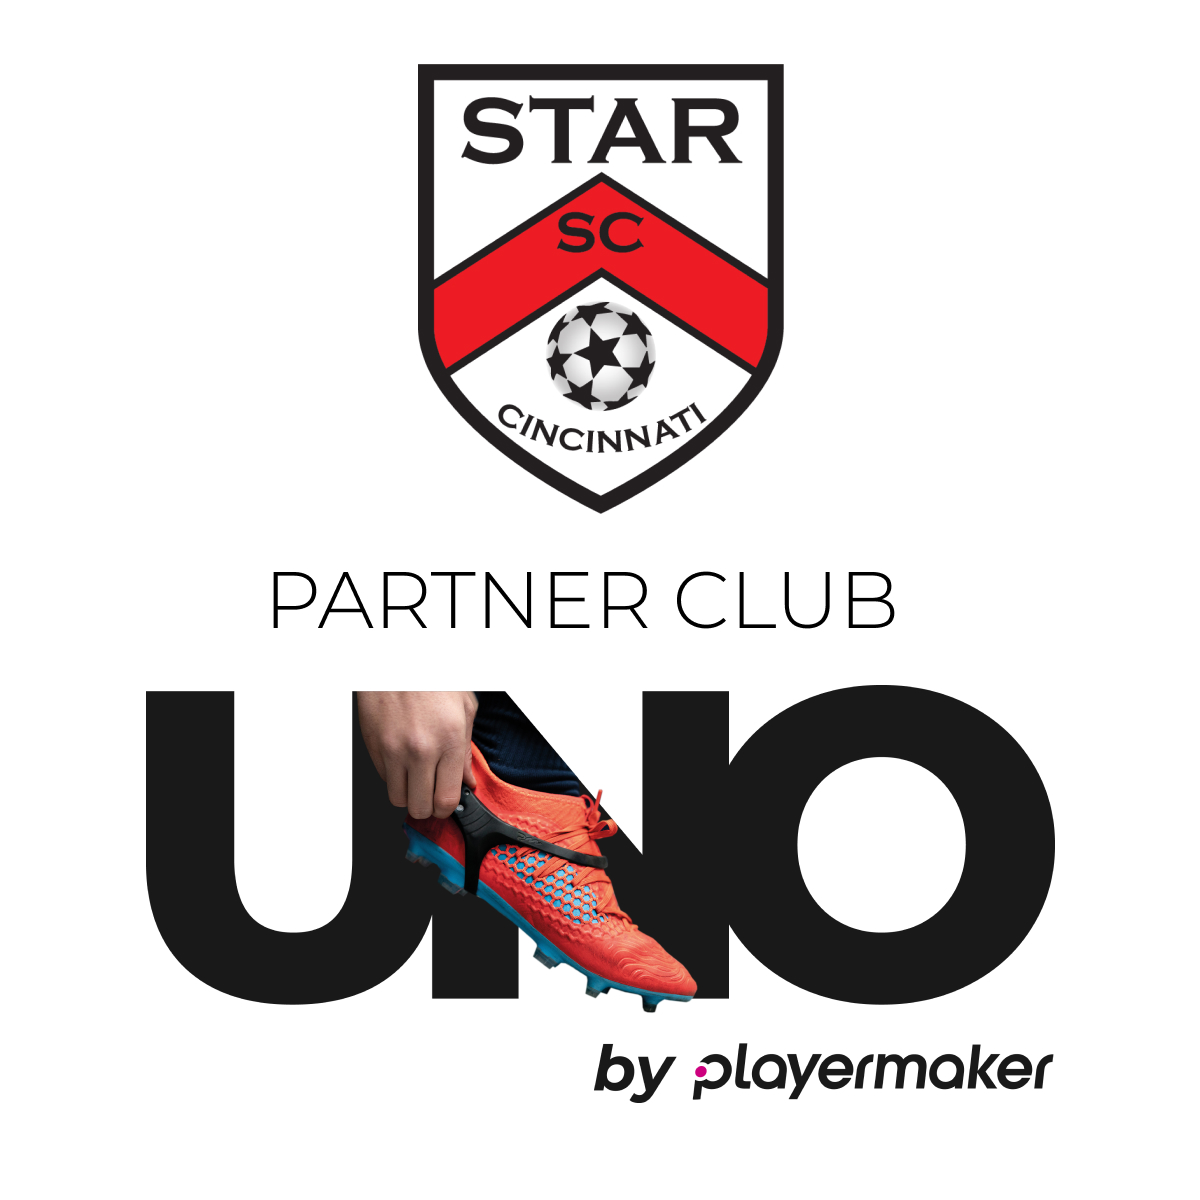 STAR SC and Playermaker UNO Partnership